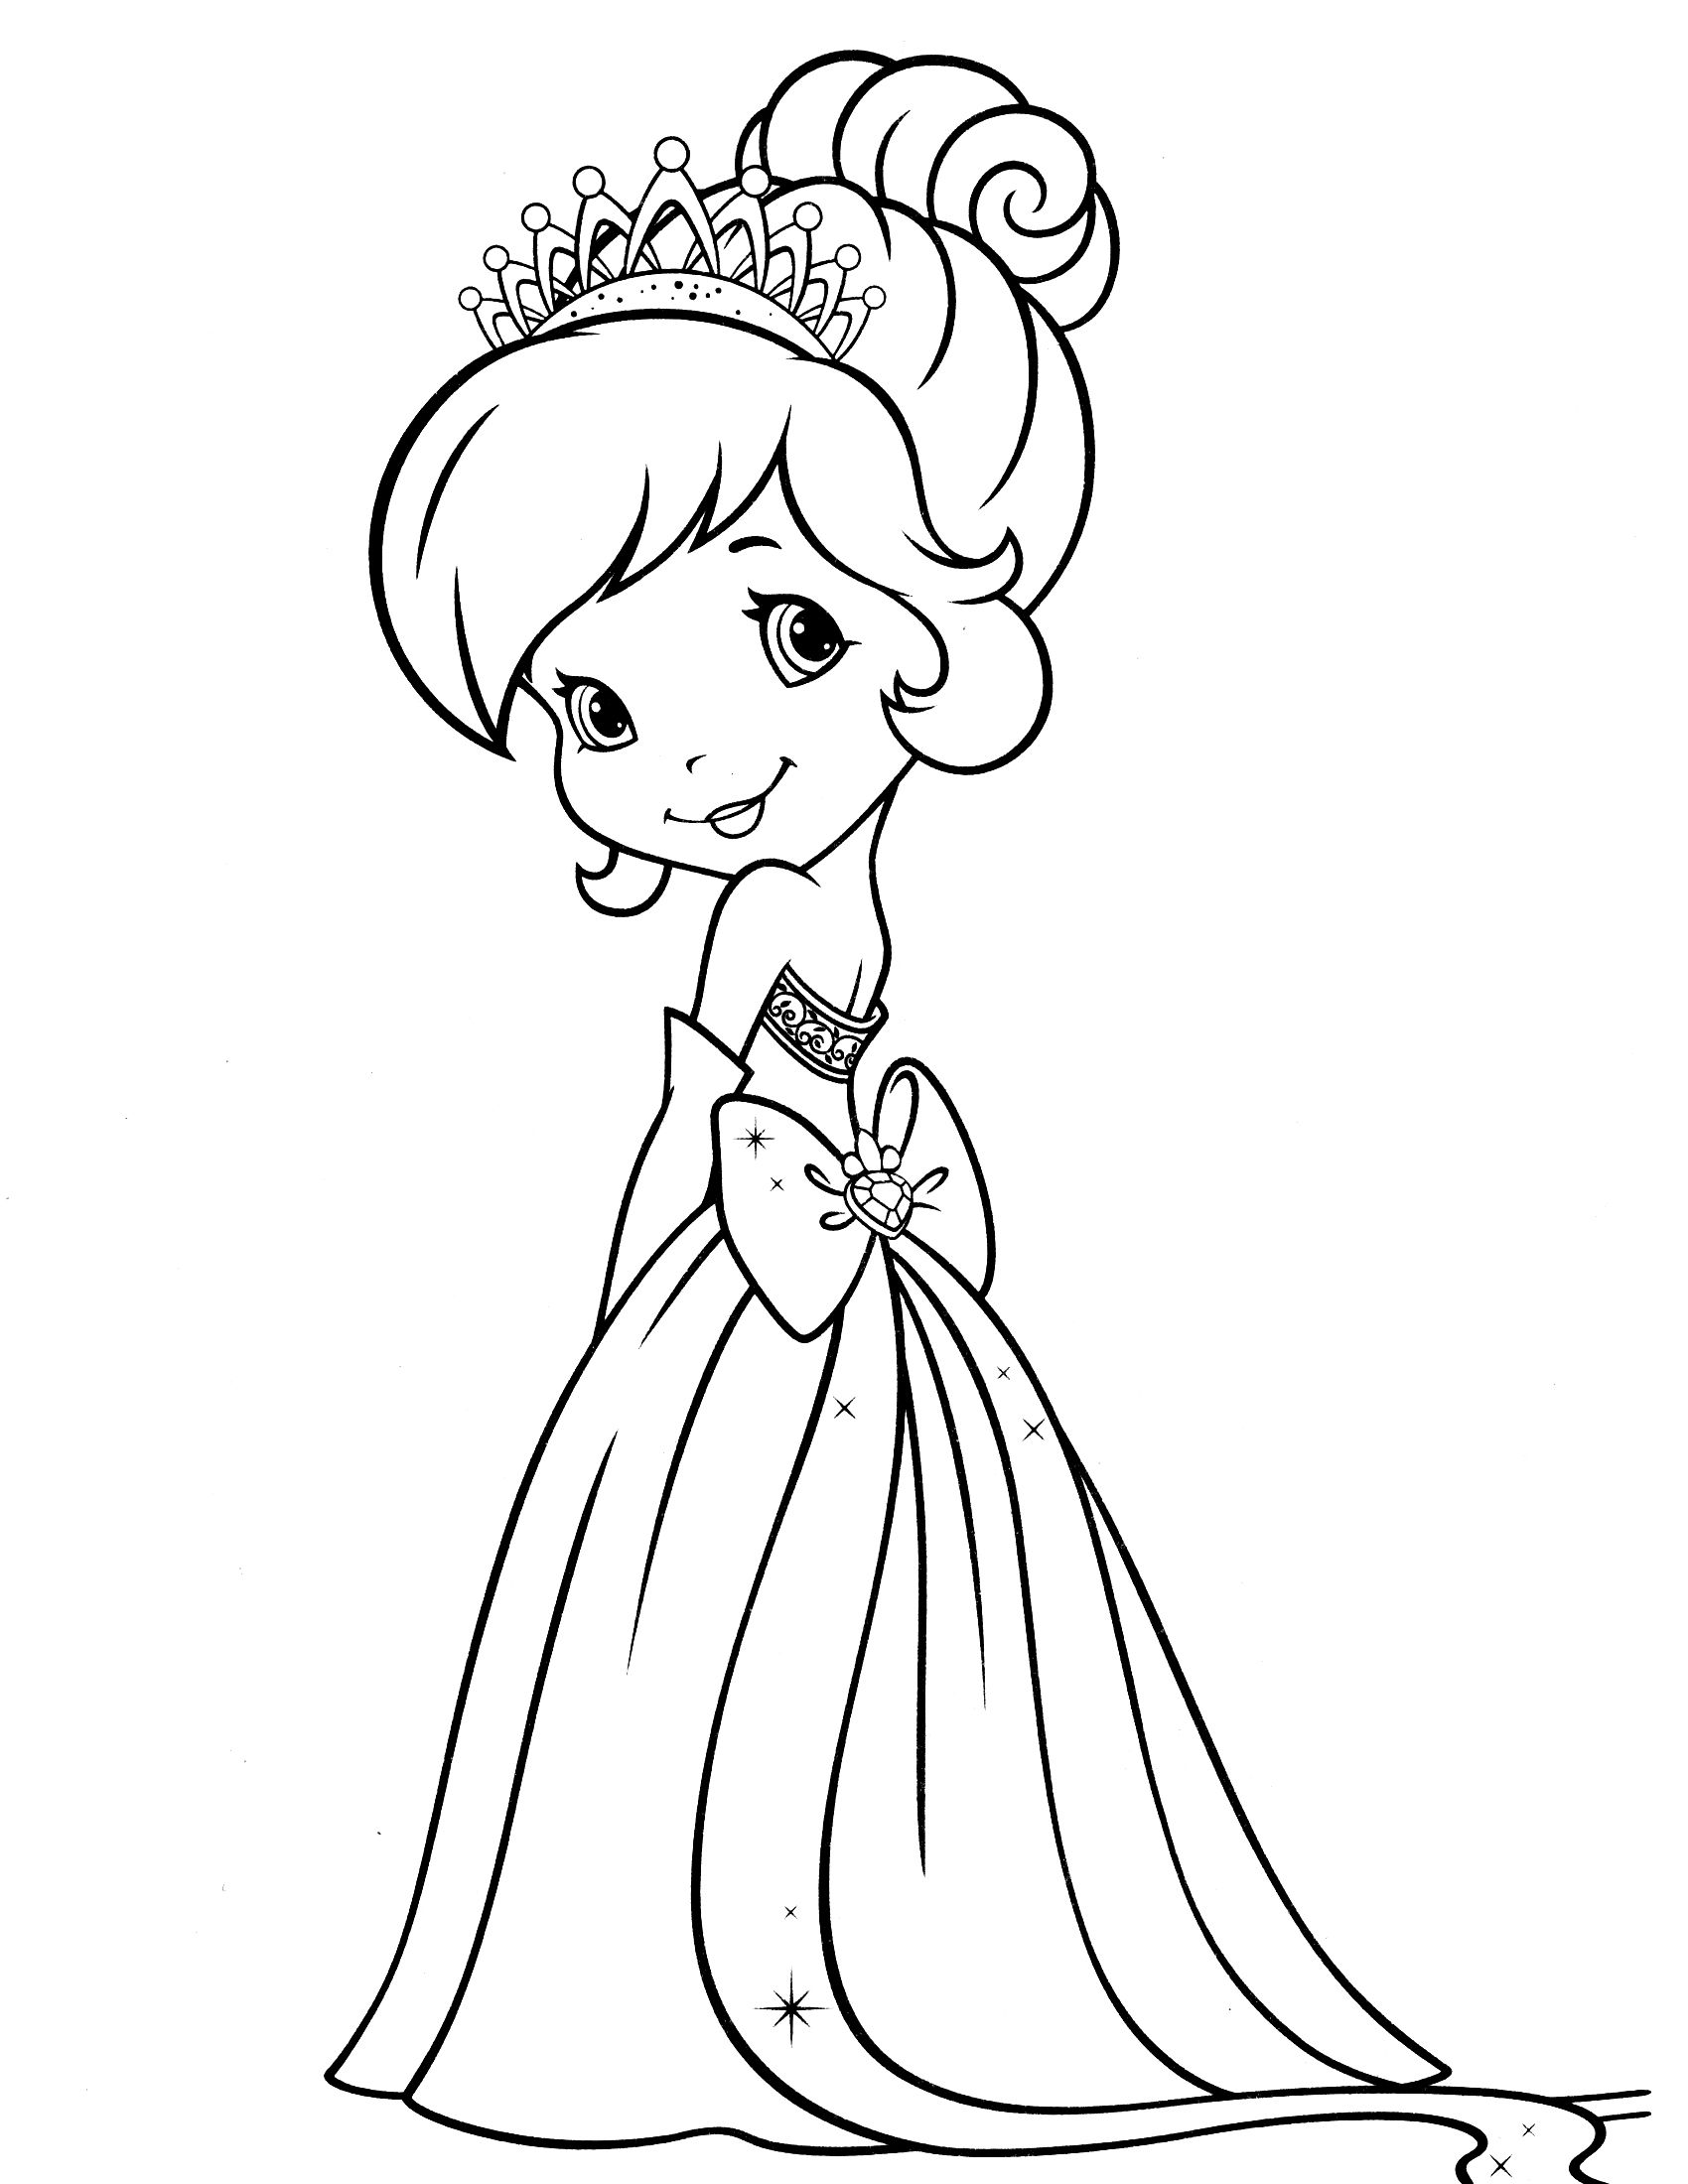 1700x2200 Strawberry Shortcake And Friends Coloring Pages To Print